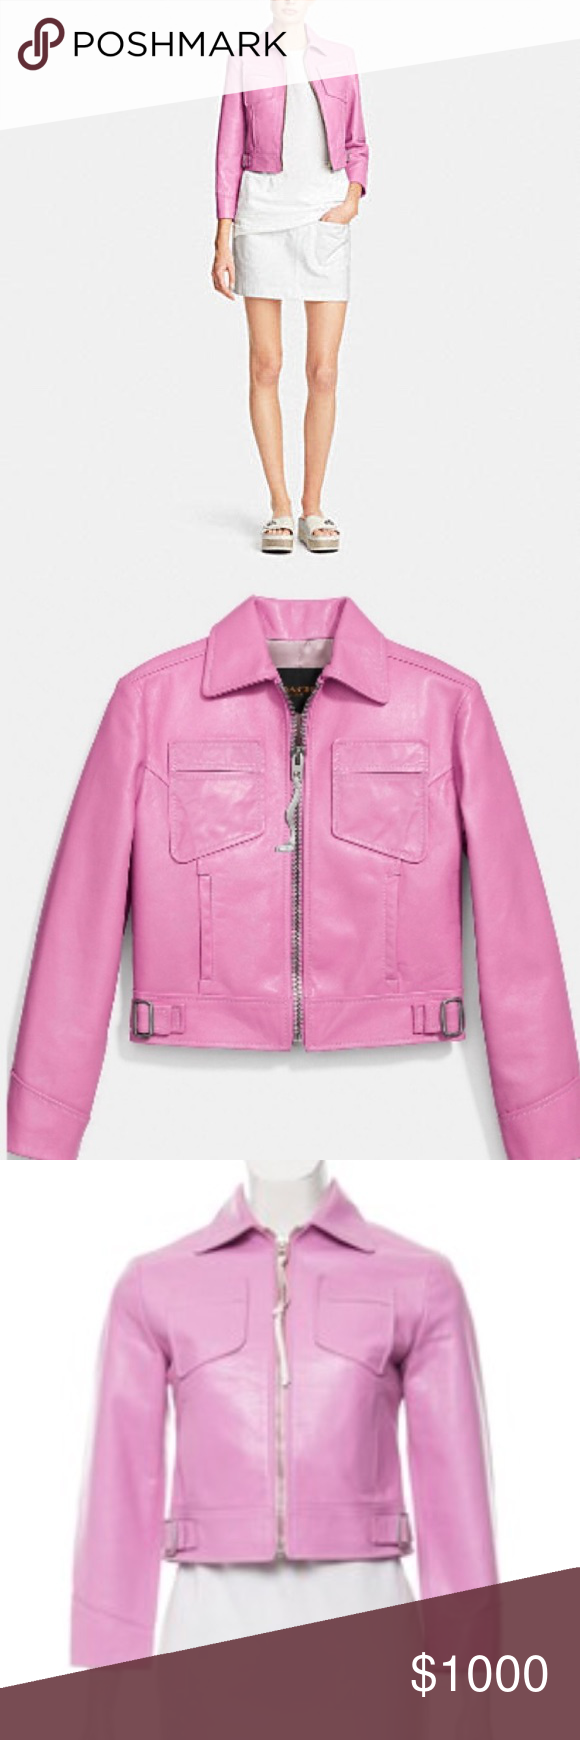 Coach pink leather jacket NWT Pink leather jacket, Pink